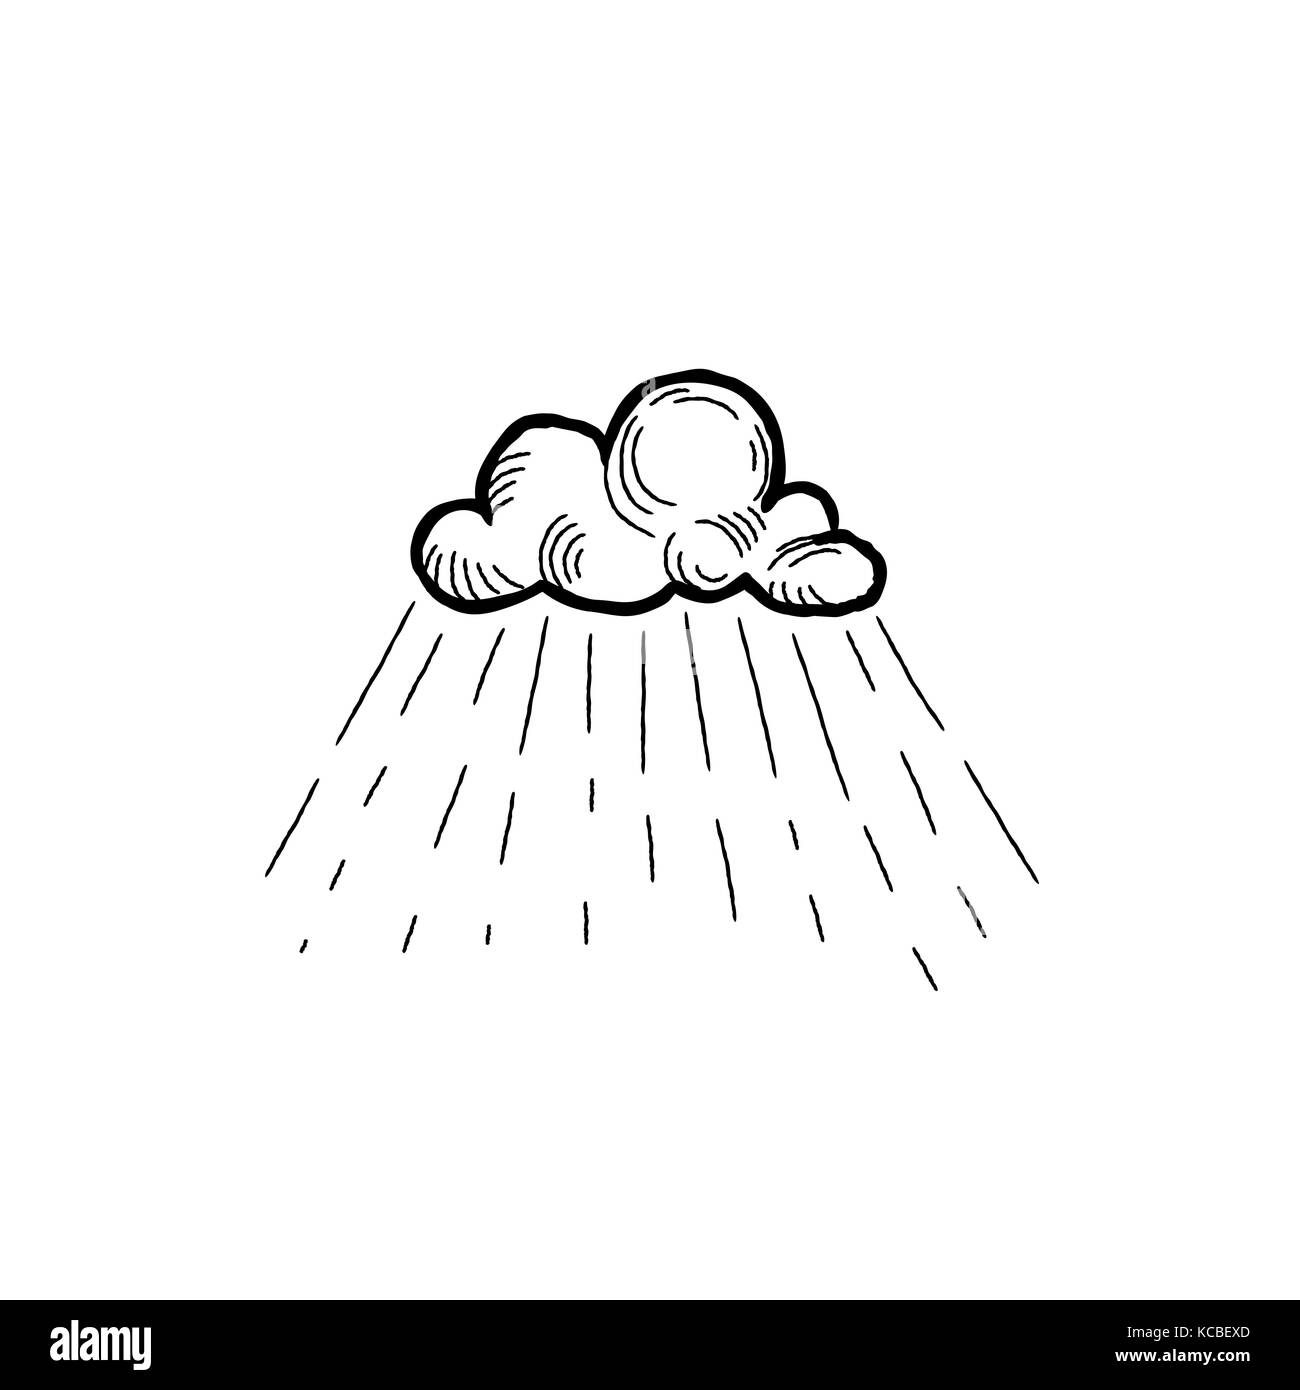 Rain icon. Hand drawn cloud with rain droplets. Weather sign - Stock Image